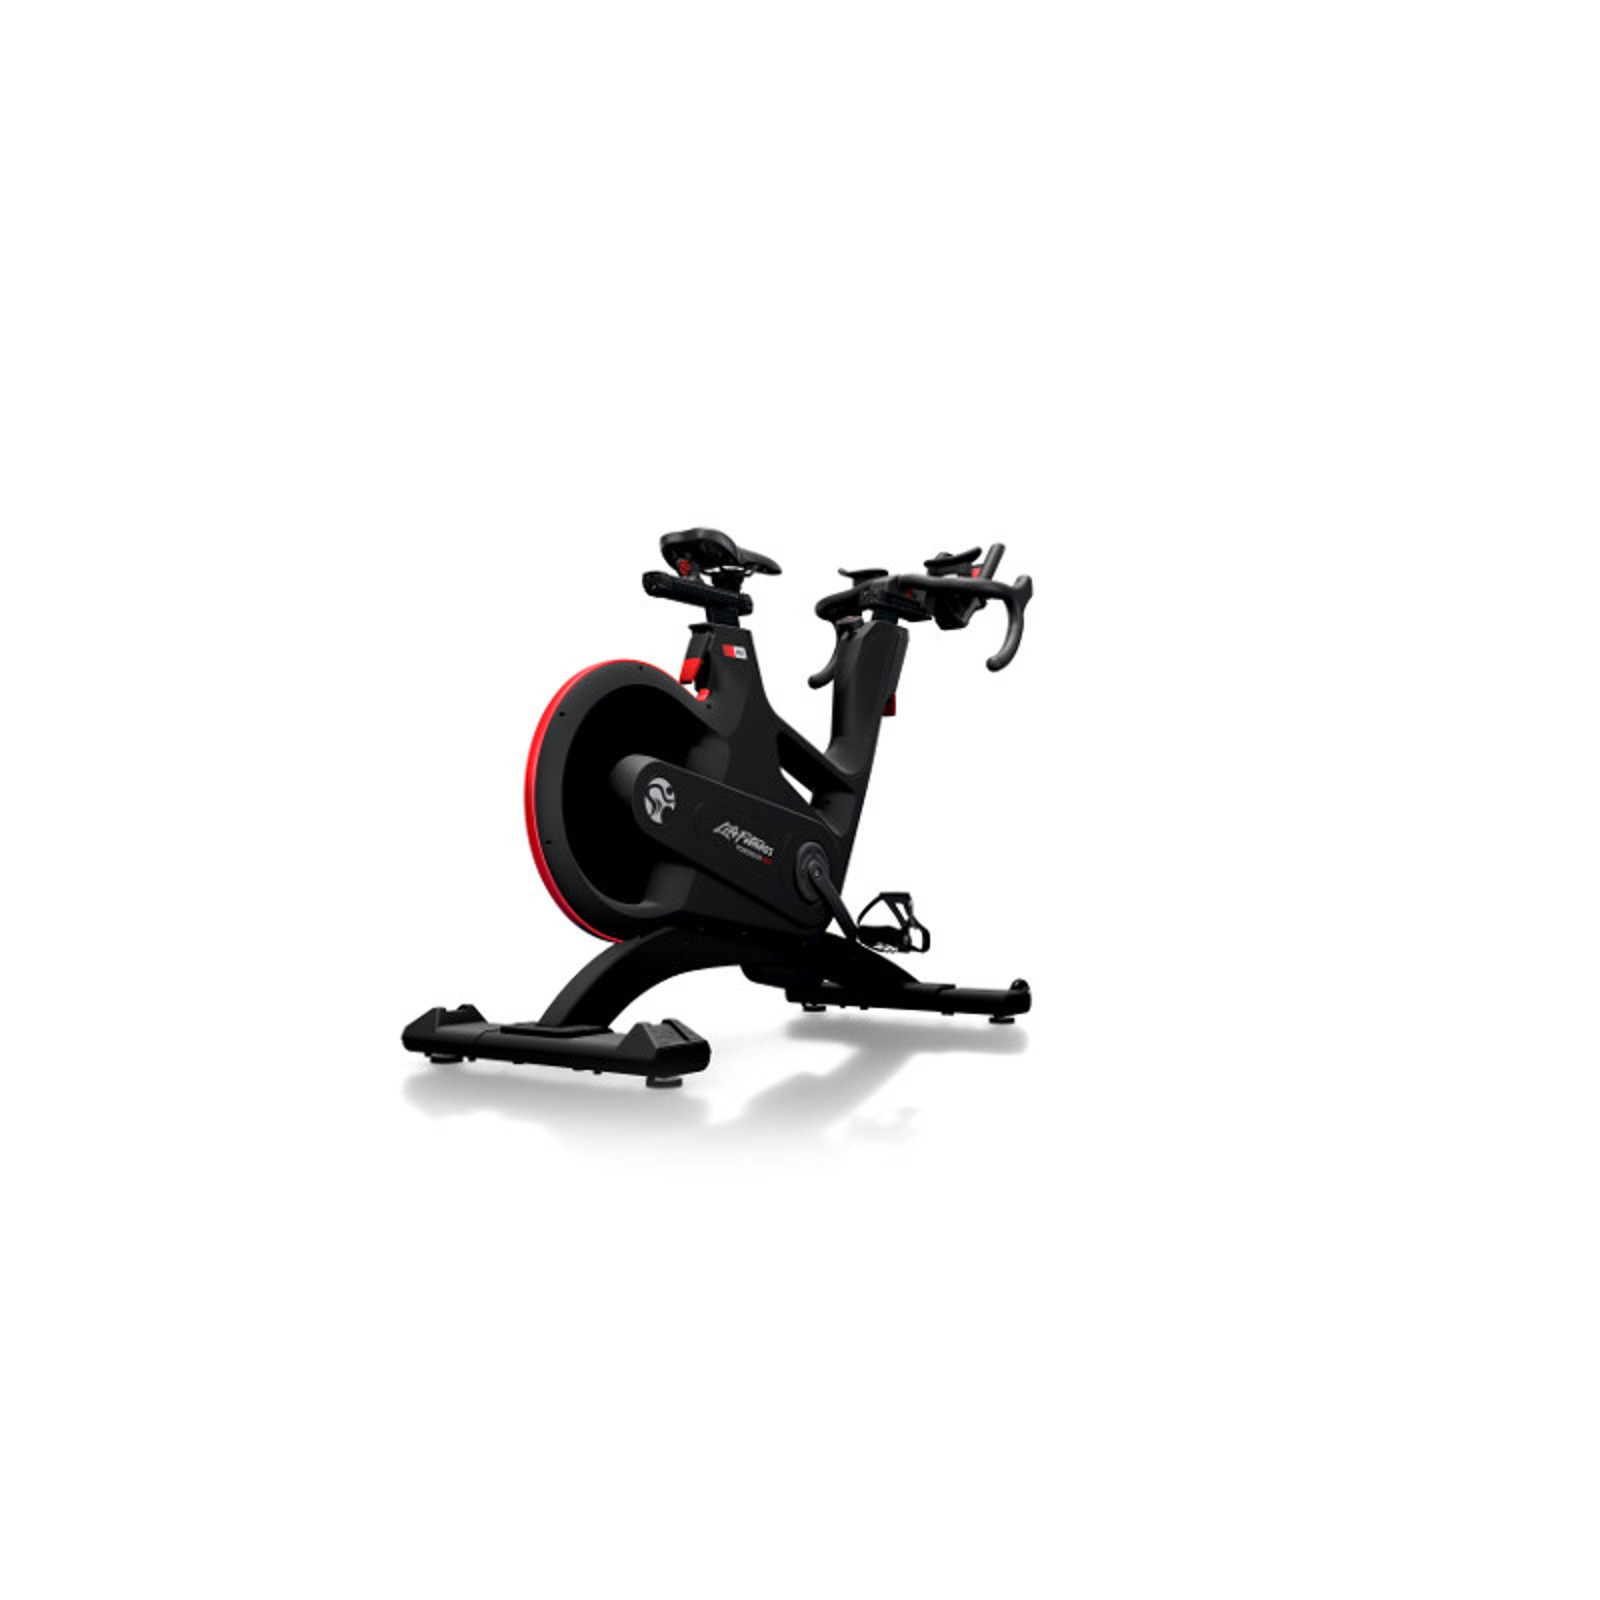 life fitness indoor bike ic8 power trainer g nstig kaufen sport tiedje. Black Bedroom Furniture Sets. Home Design Ideas